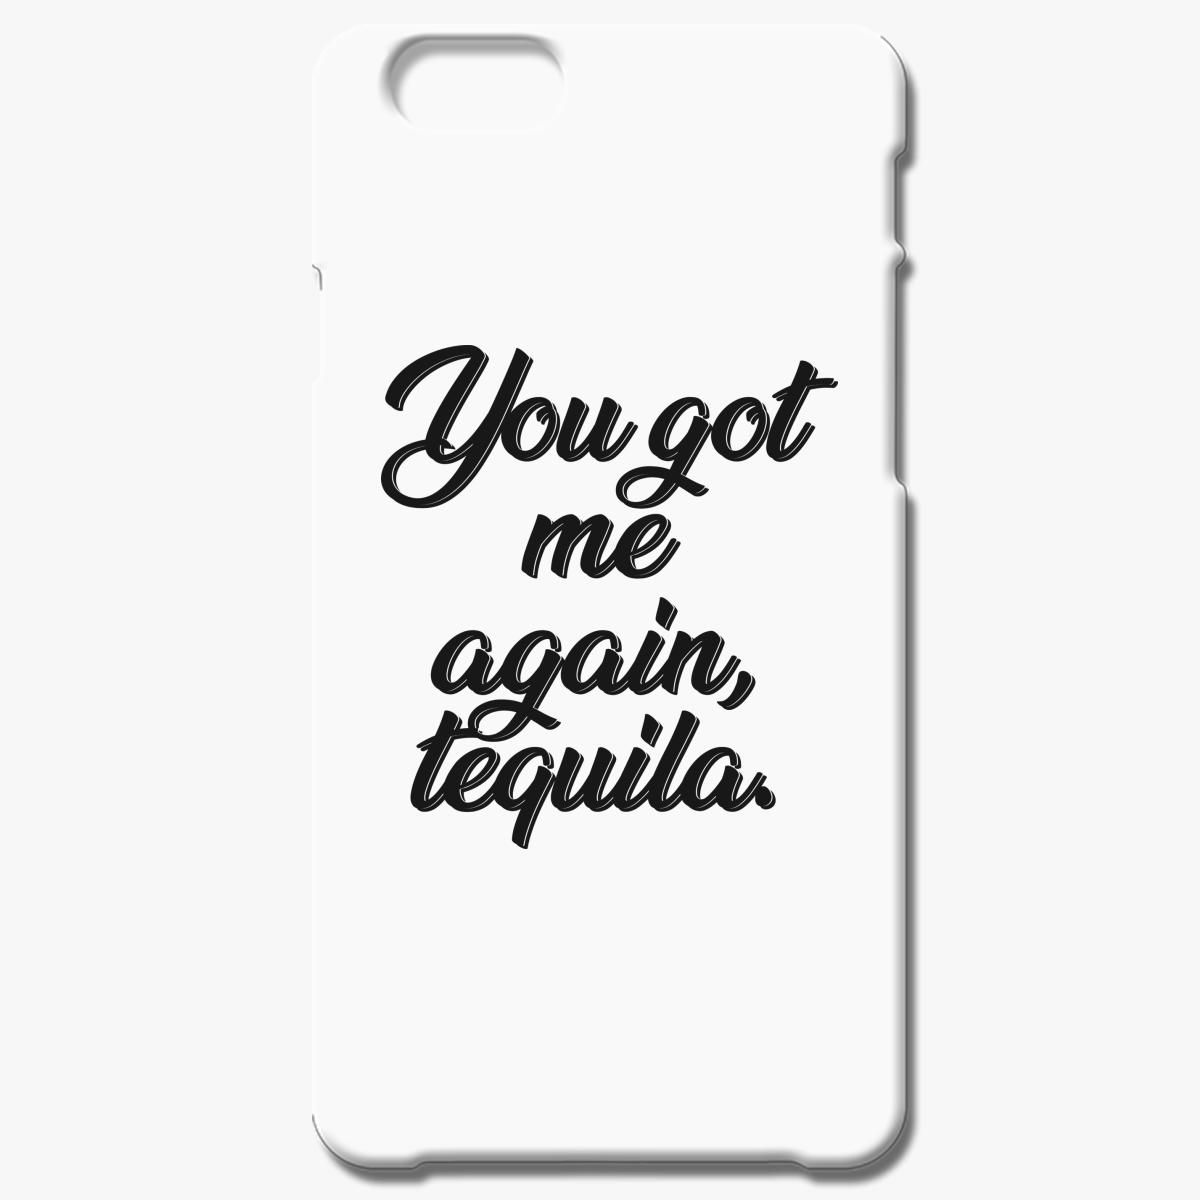 You Got Me Again Tequila Iphone 6 6s Plus Case